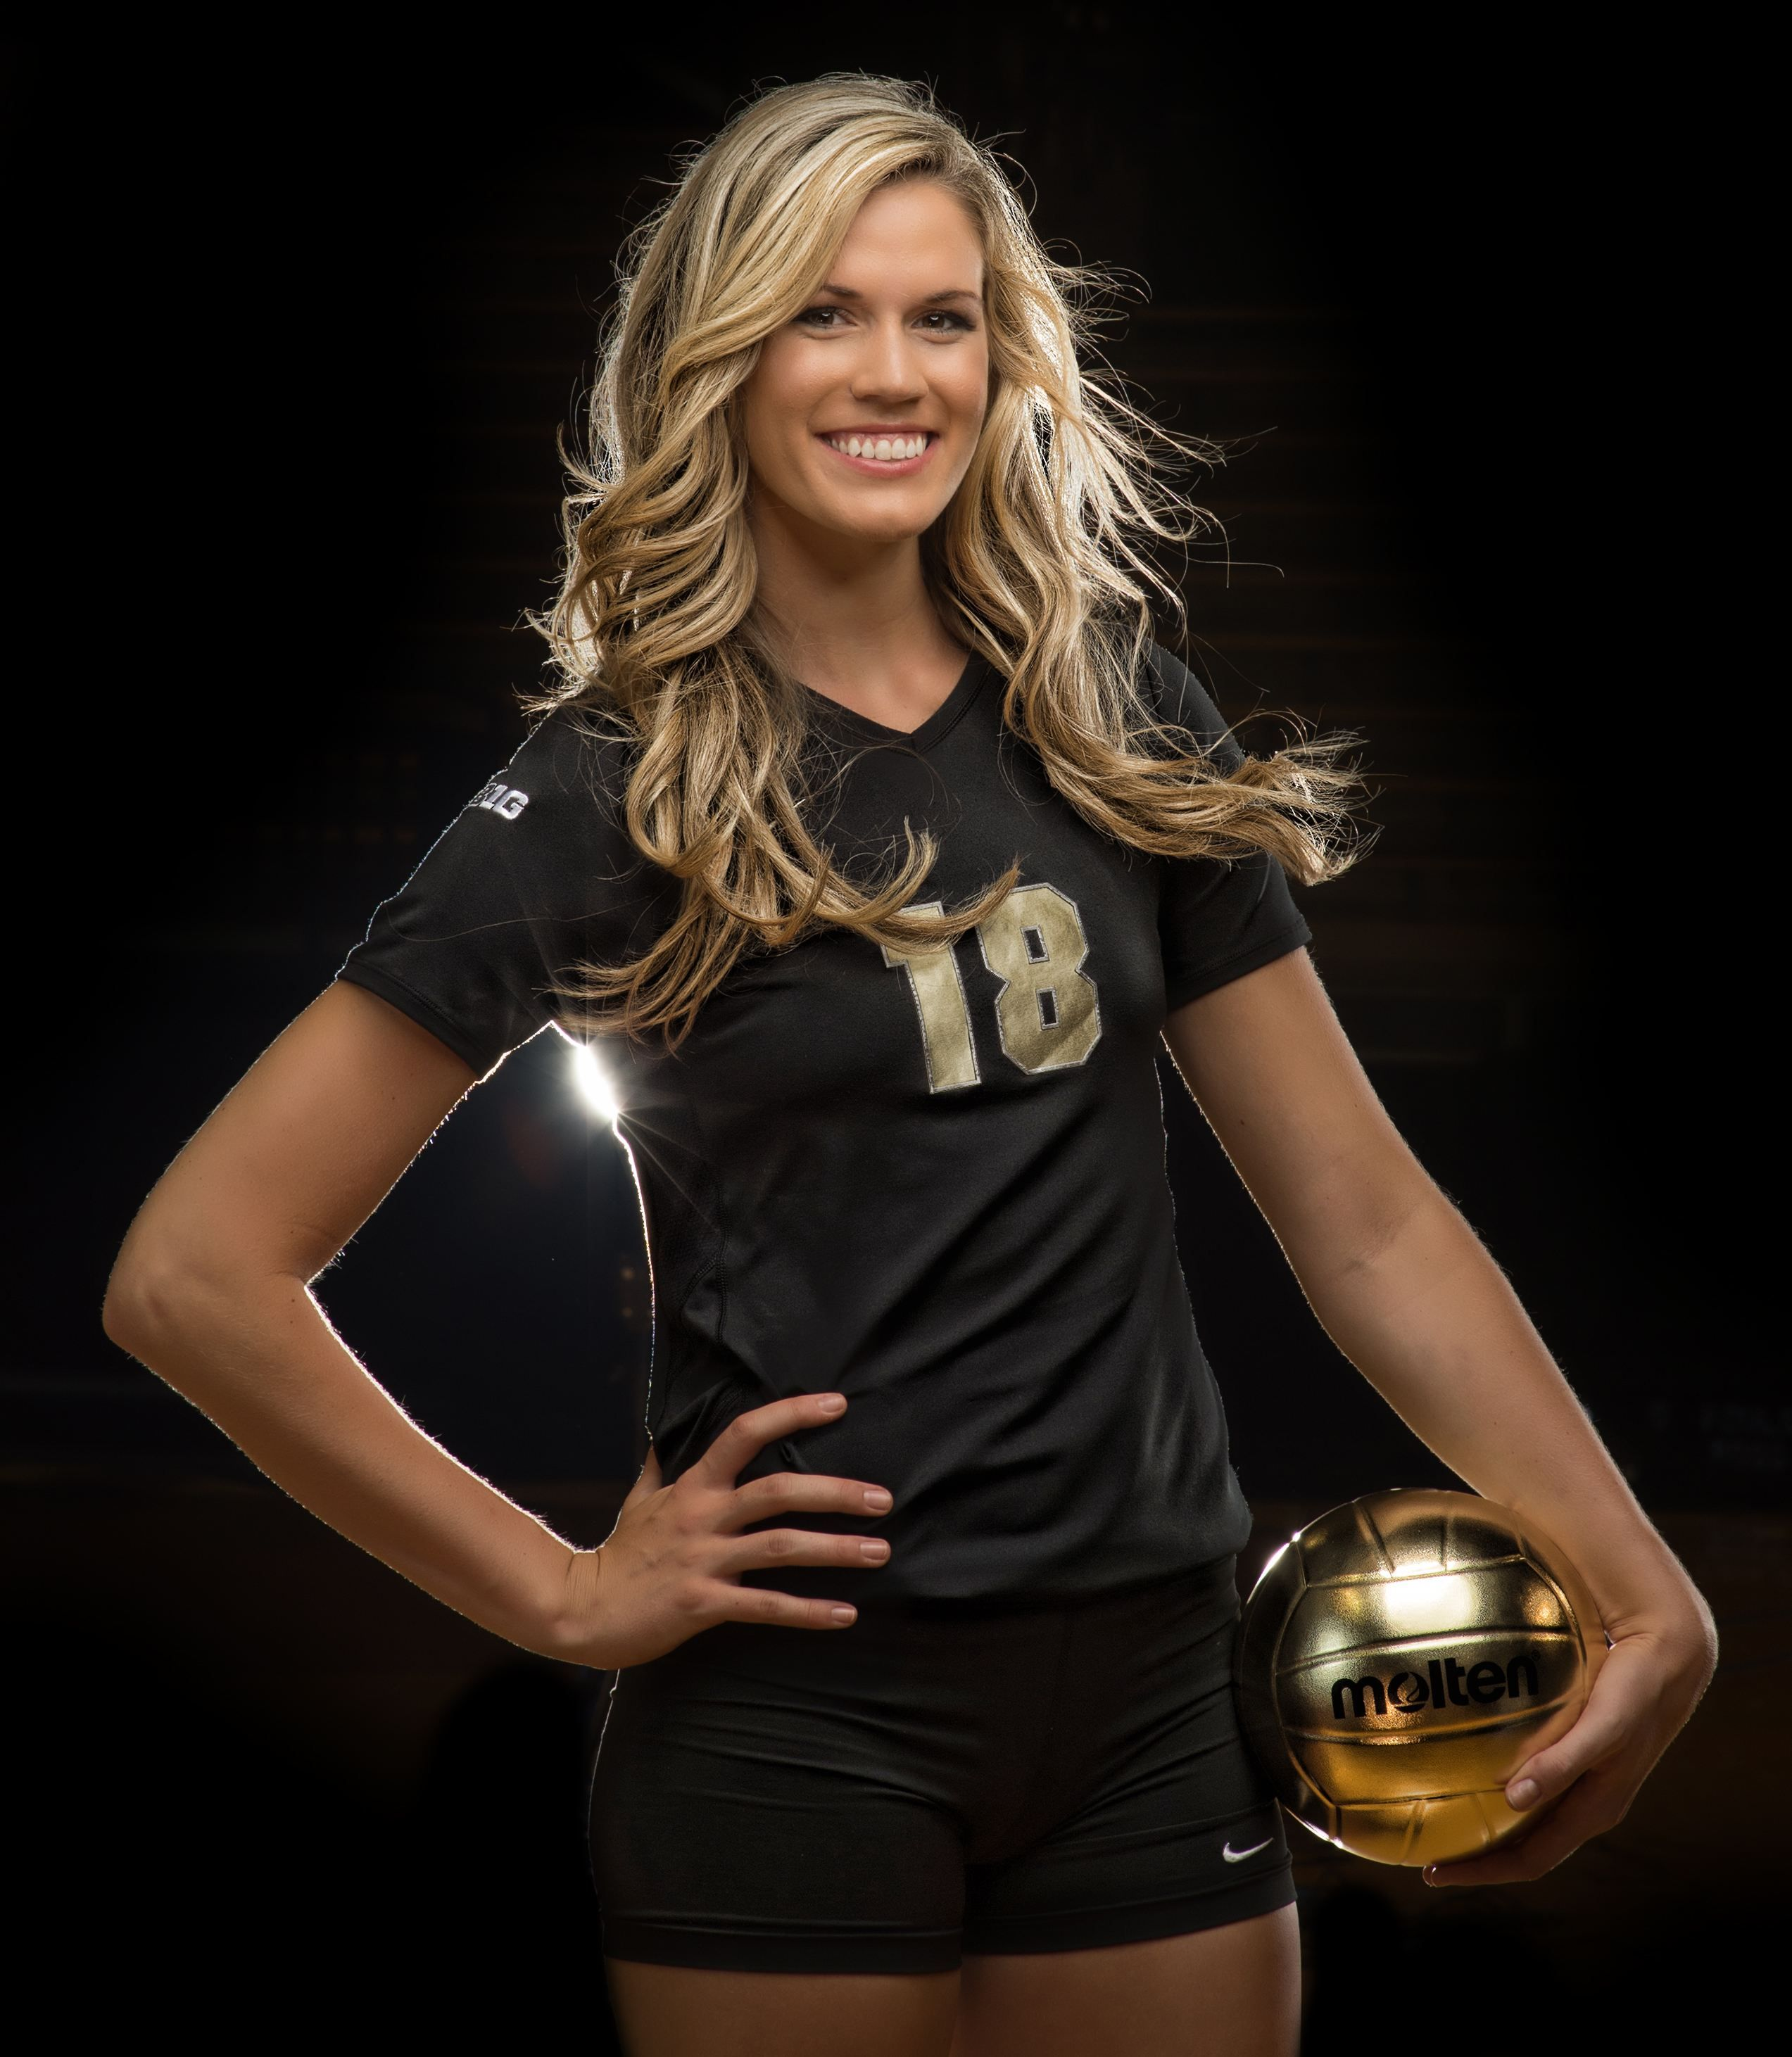 volleyball photo shoot behind the scenes by purdue